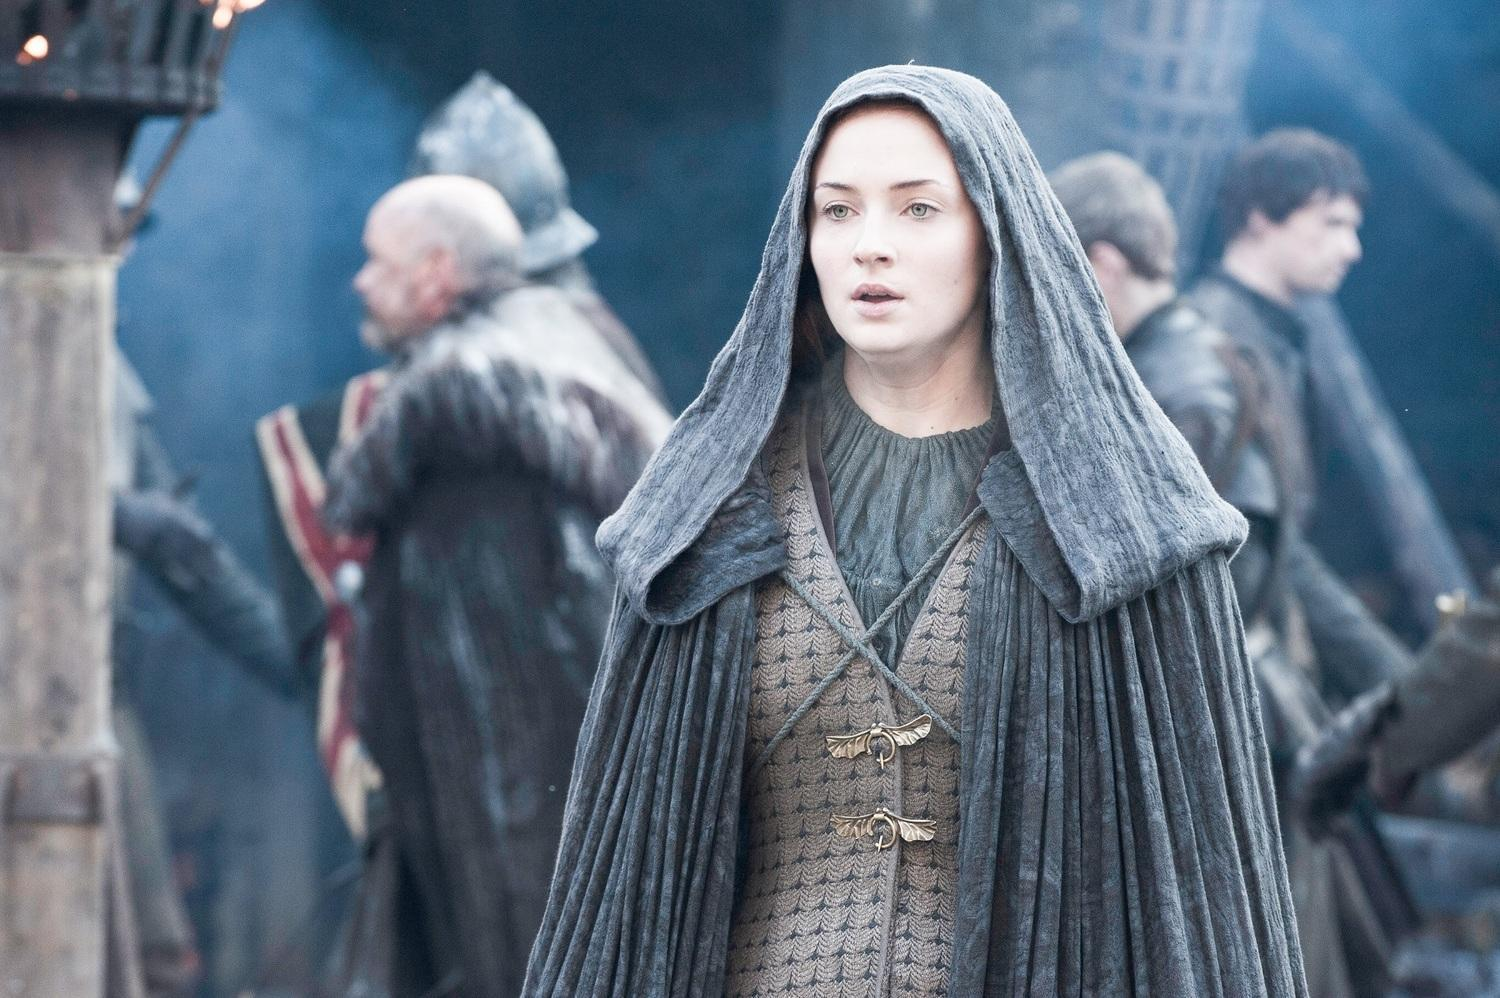 Updated Sophie Turner Spotted Filming At Winterfell With A Visitor